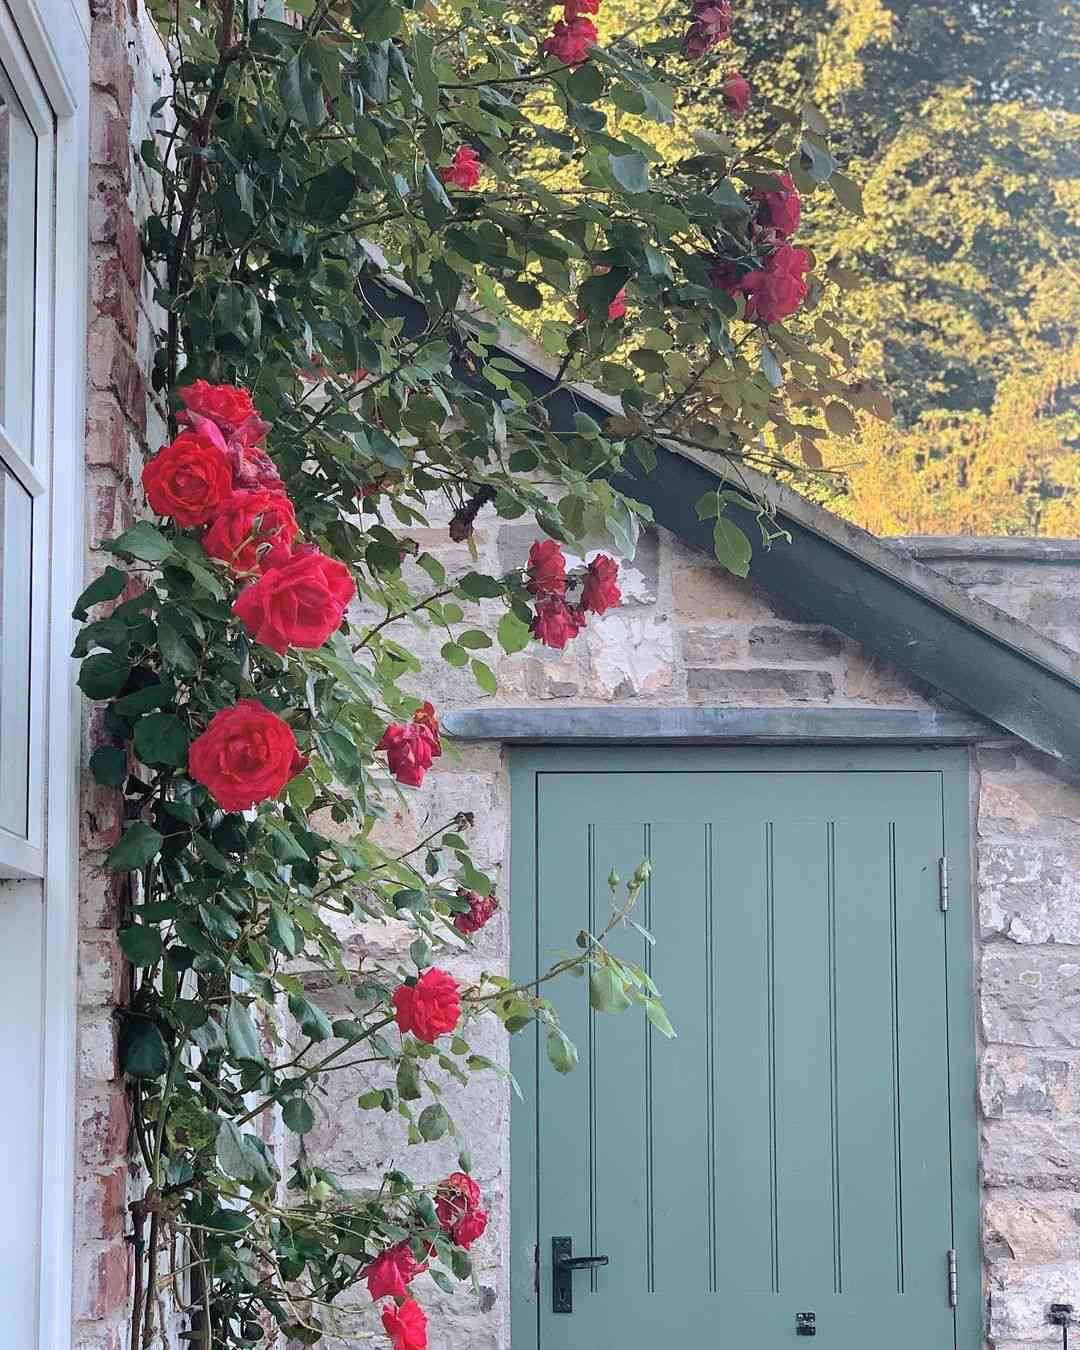 Red rose vine trailing up house.